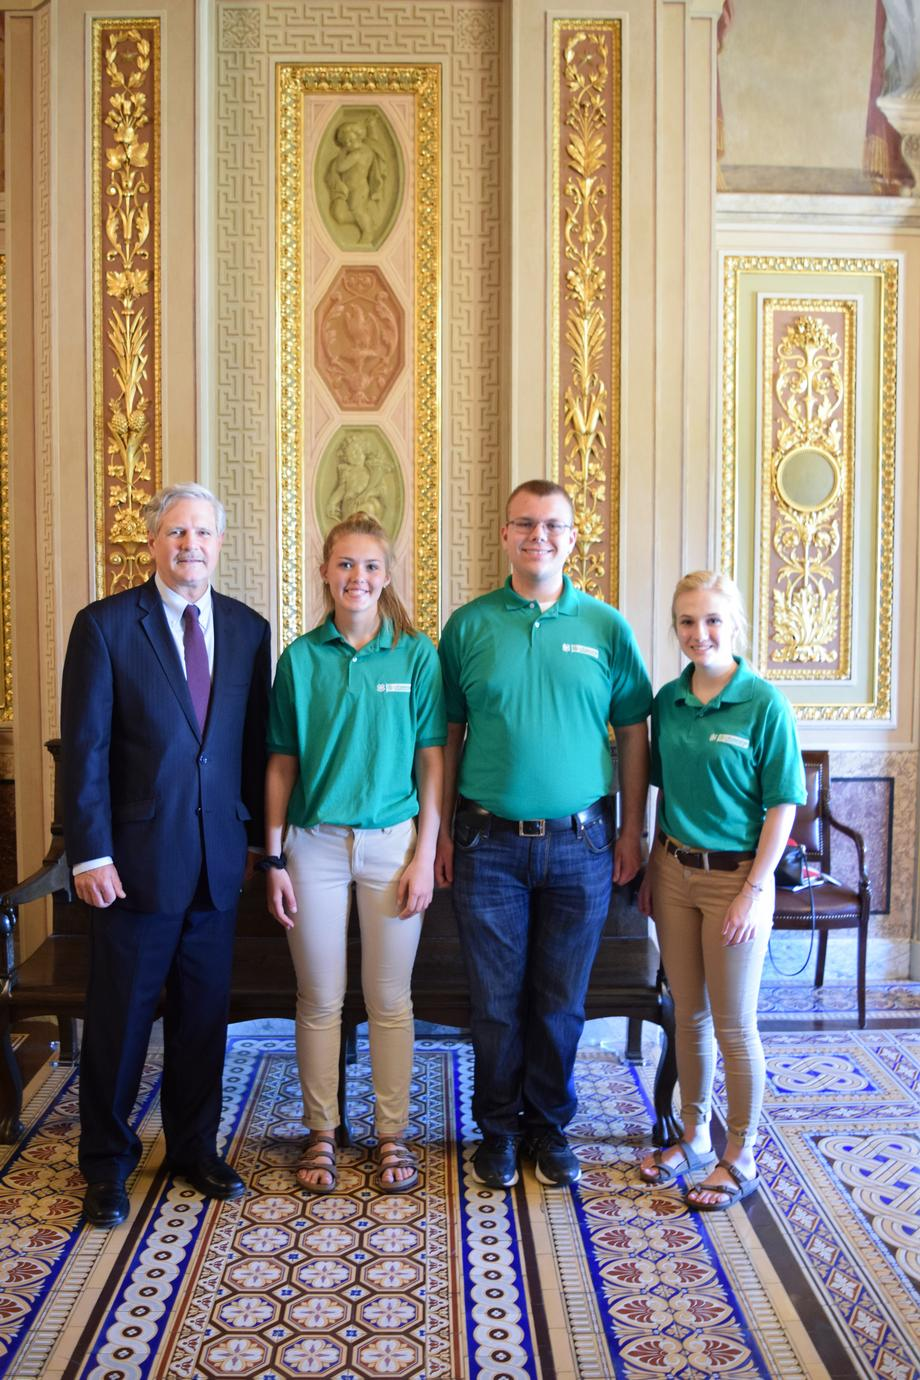 June 2019 - Senator Hoeven with ND 4-H students.